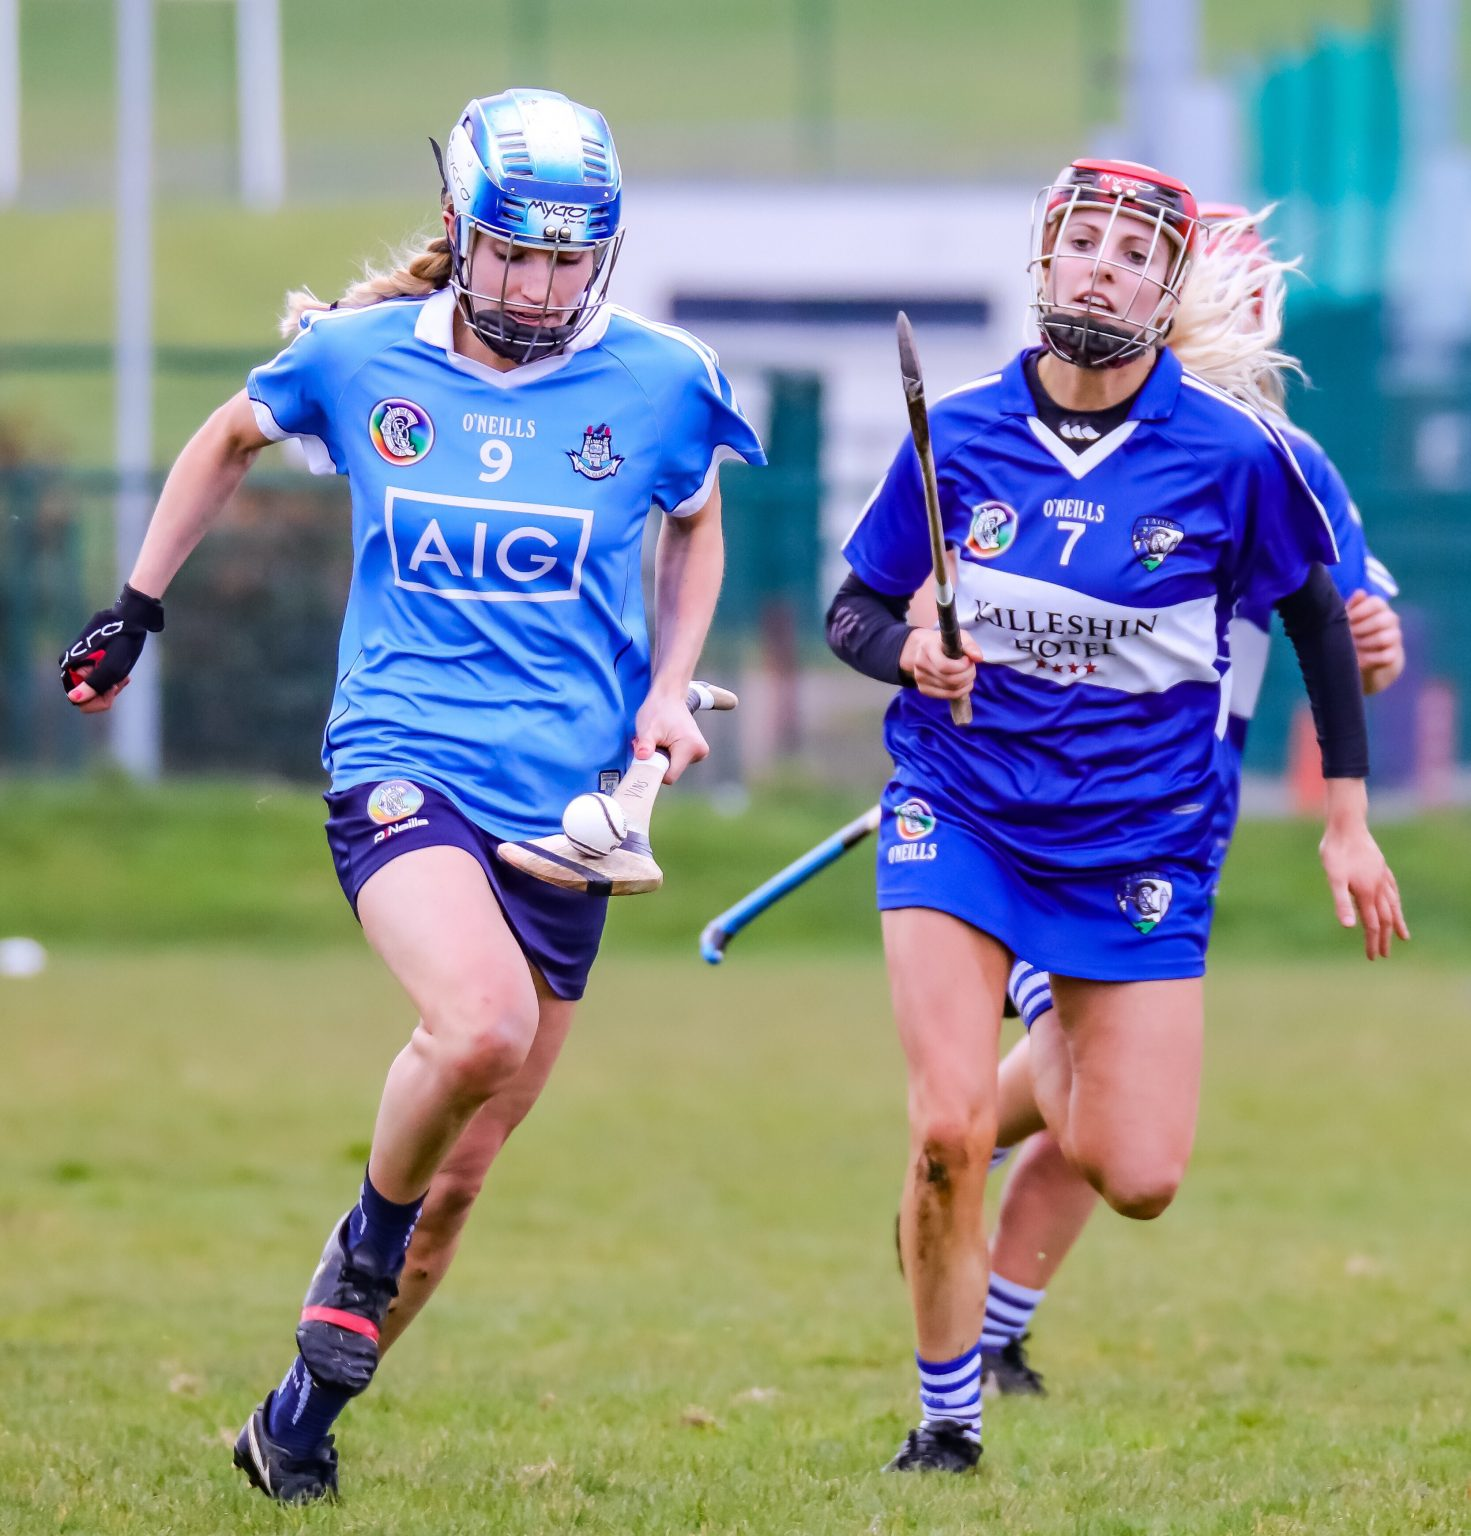 Action Shot From Dublin's Premier Junior Camogie Team Win Over Laois Which Put Them One Win From League Semi Finals